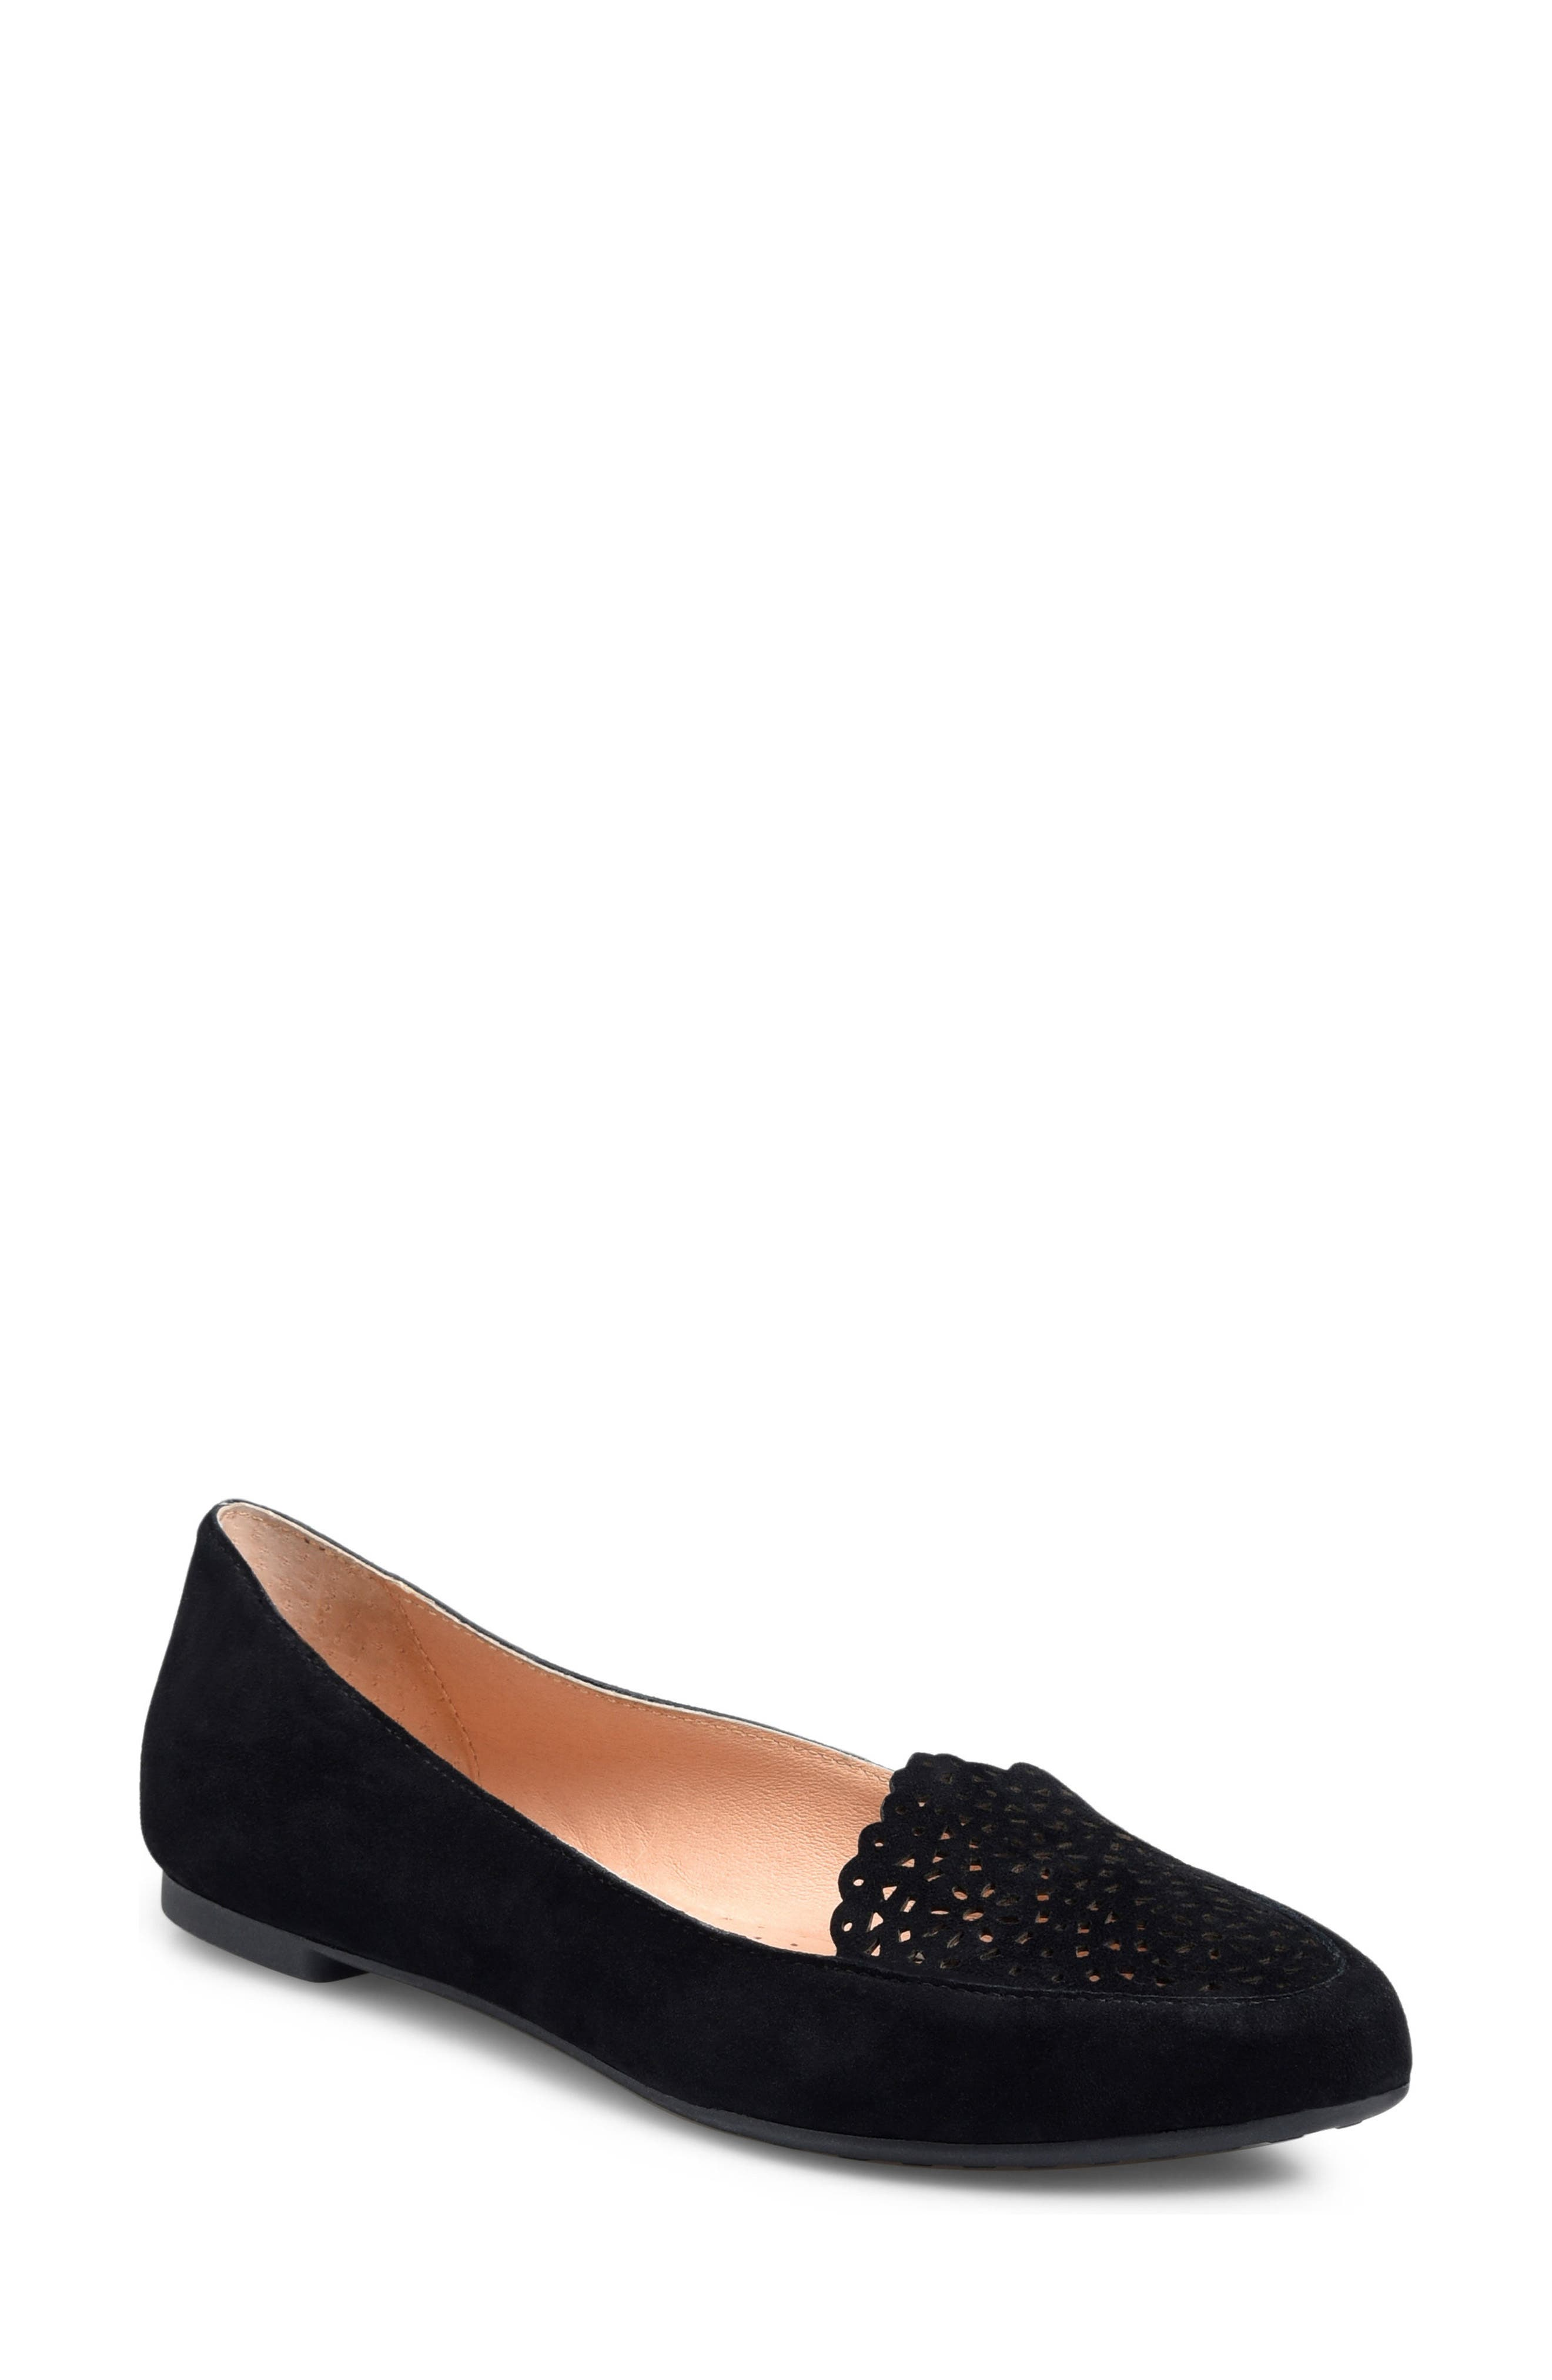 ONO, Marna Flat, Main thumbnail 1, color, BLACK SUEDE